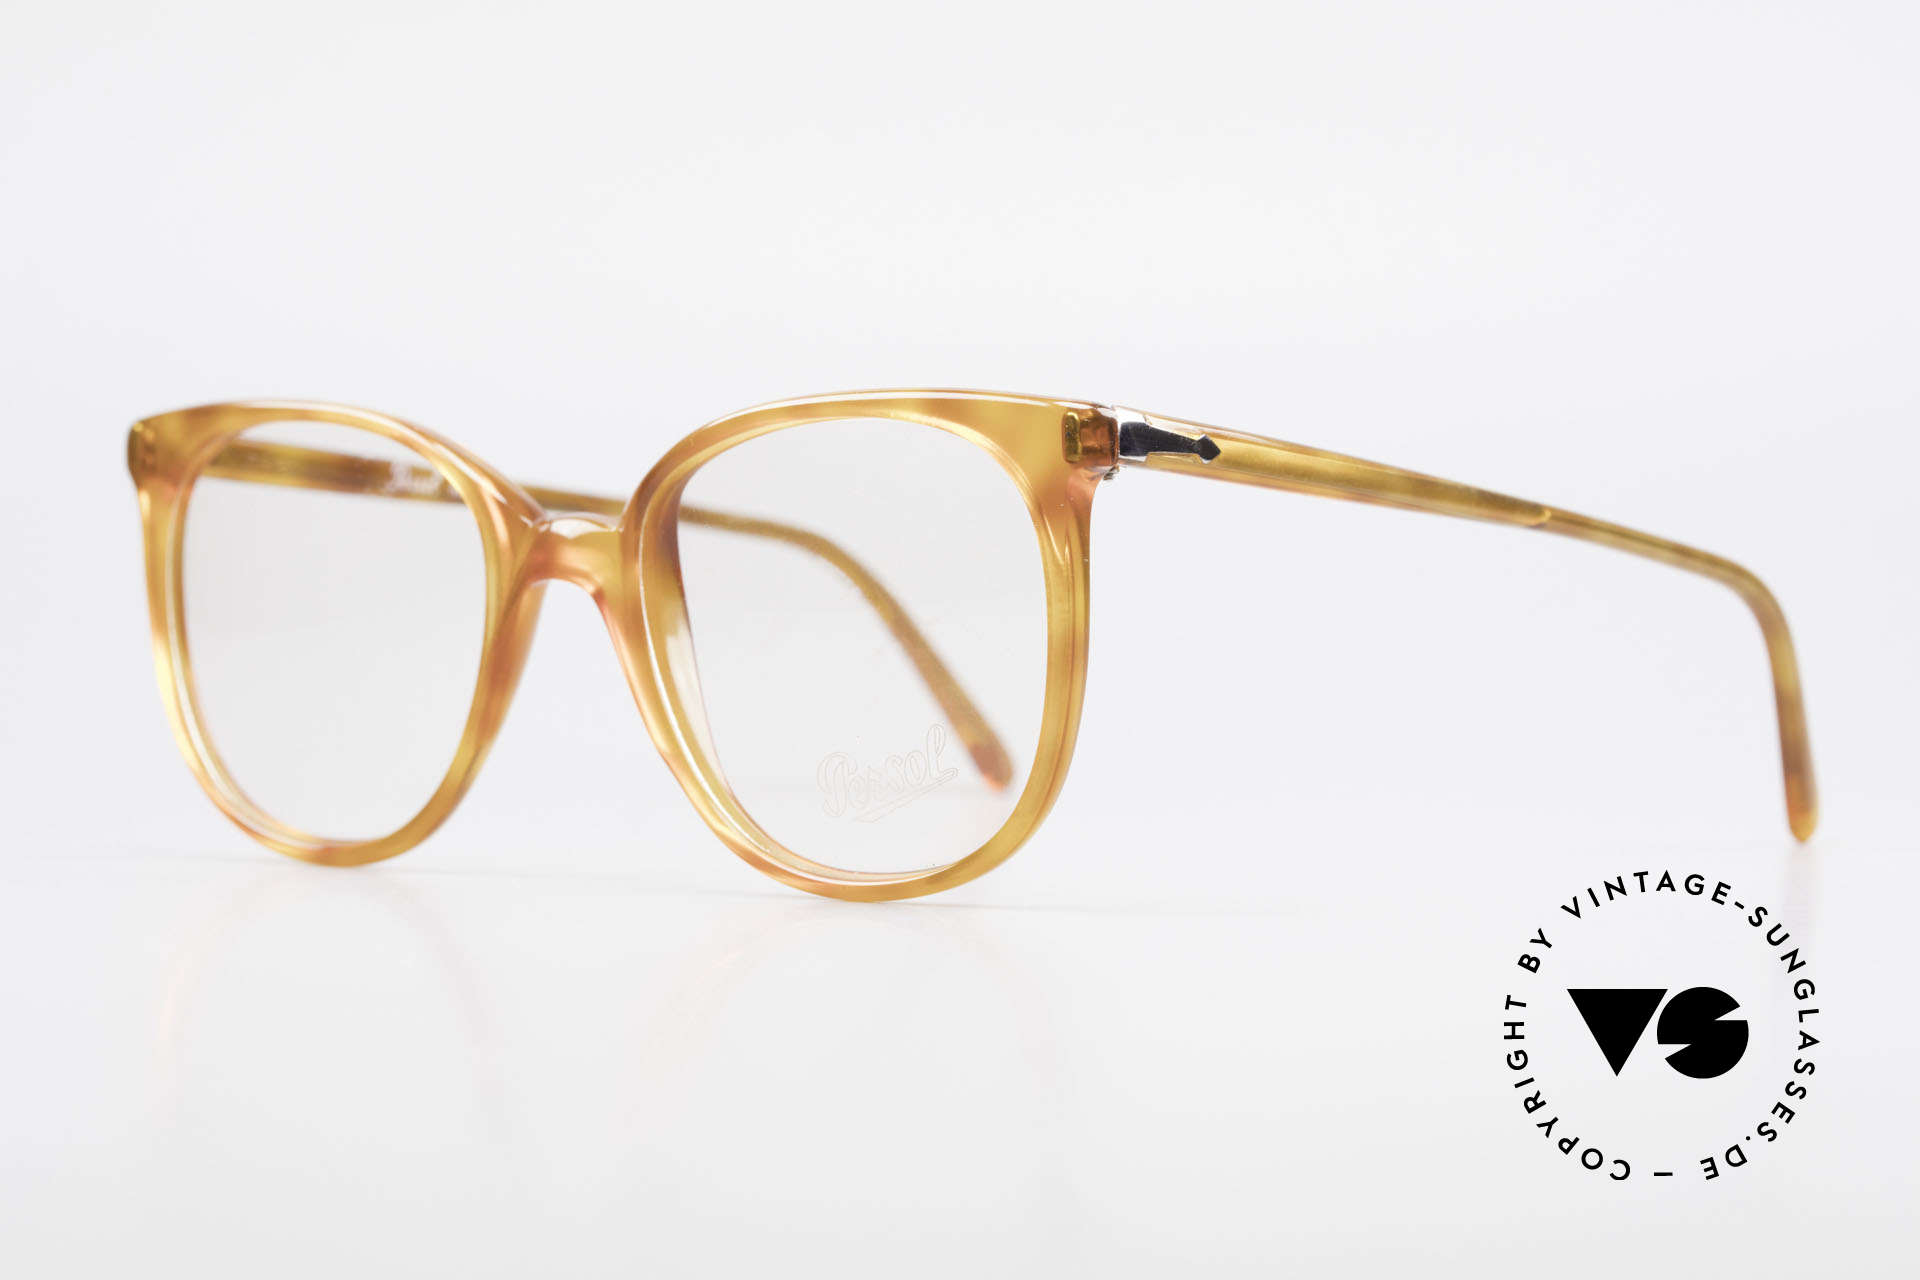 Persol 09181 Ratti Old Vintage Eyeglasses 80's, rarity from the old RATTI manufacture in Torino, Made for Men and Women